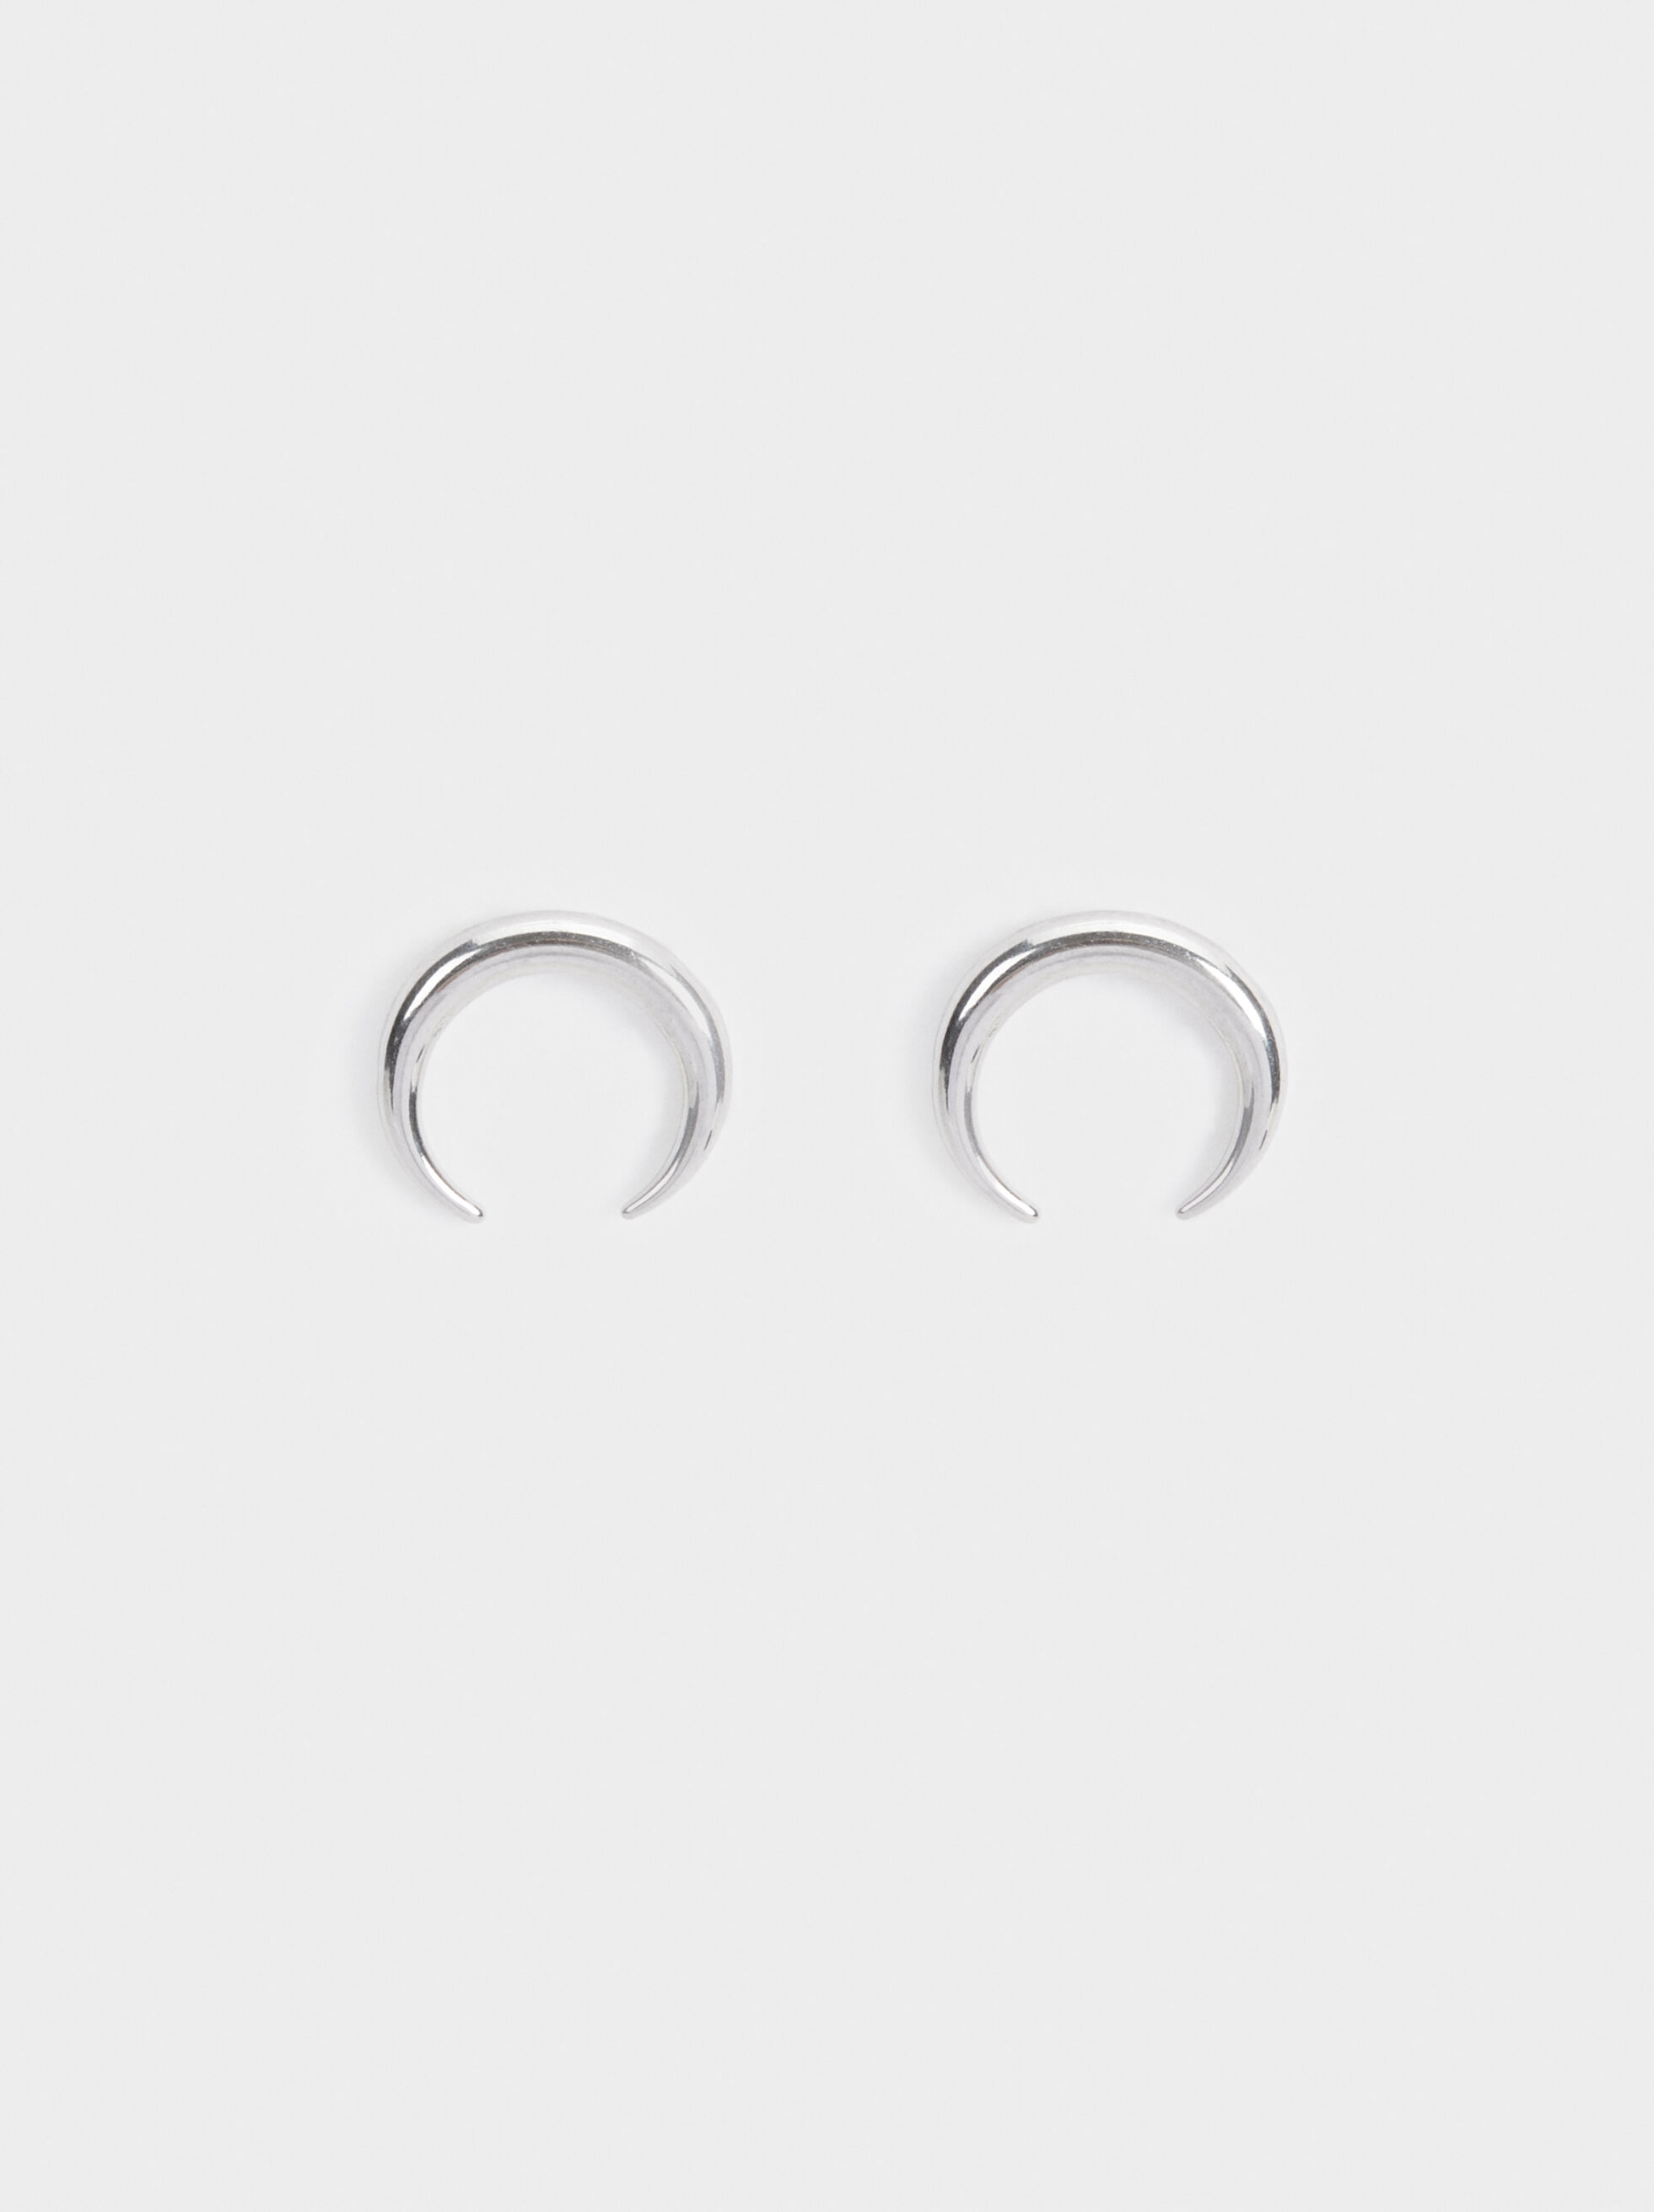 Steel Studs With Moon Design, Silver, hi-res